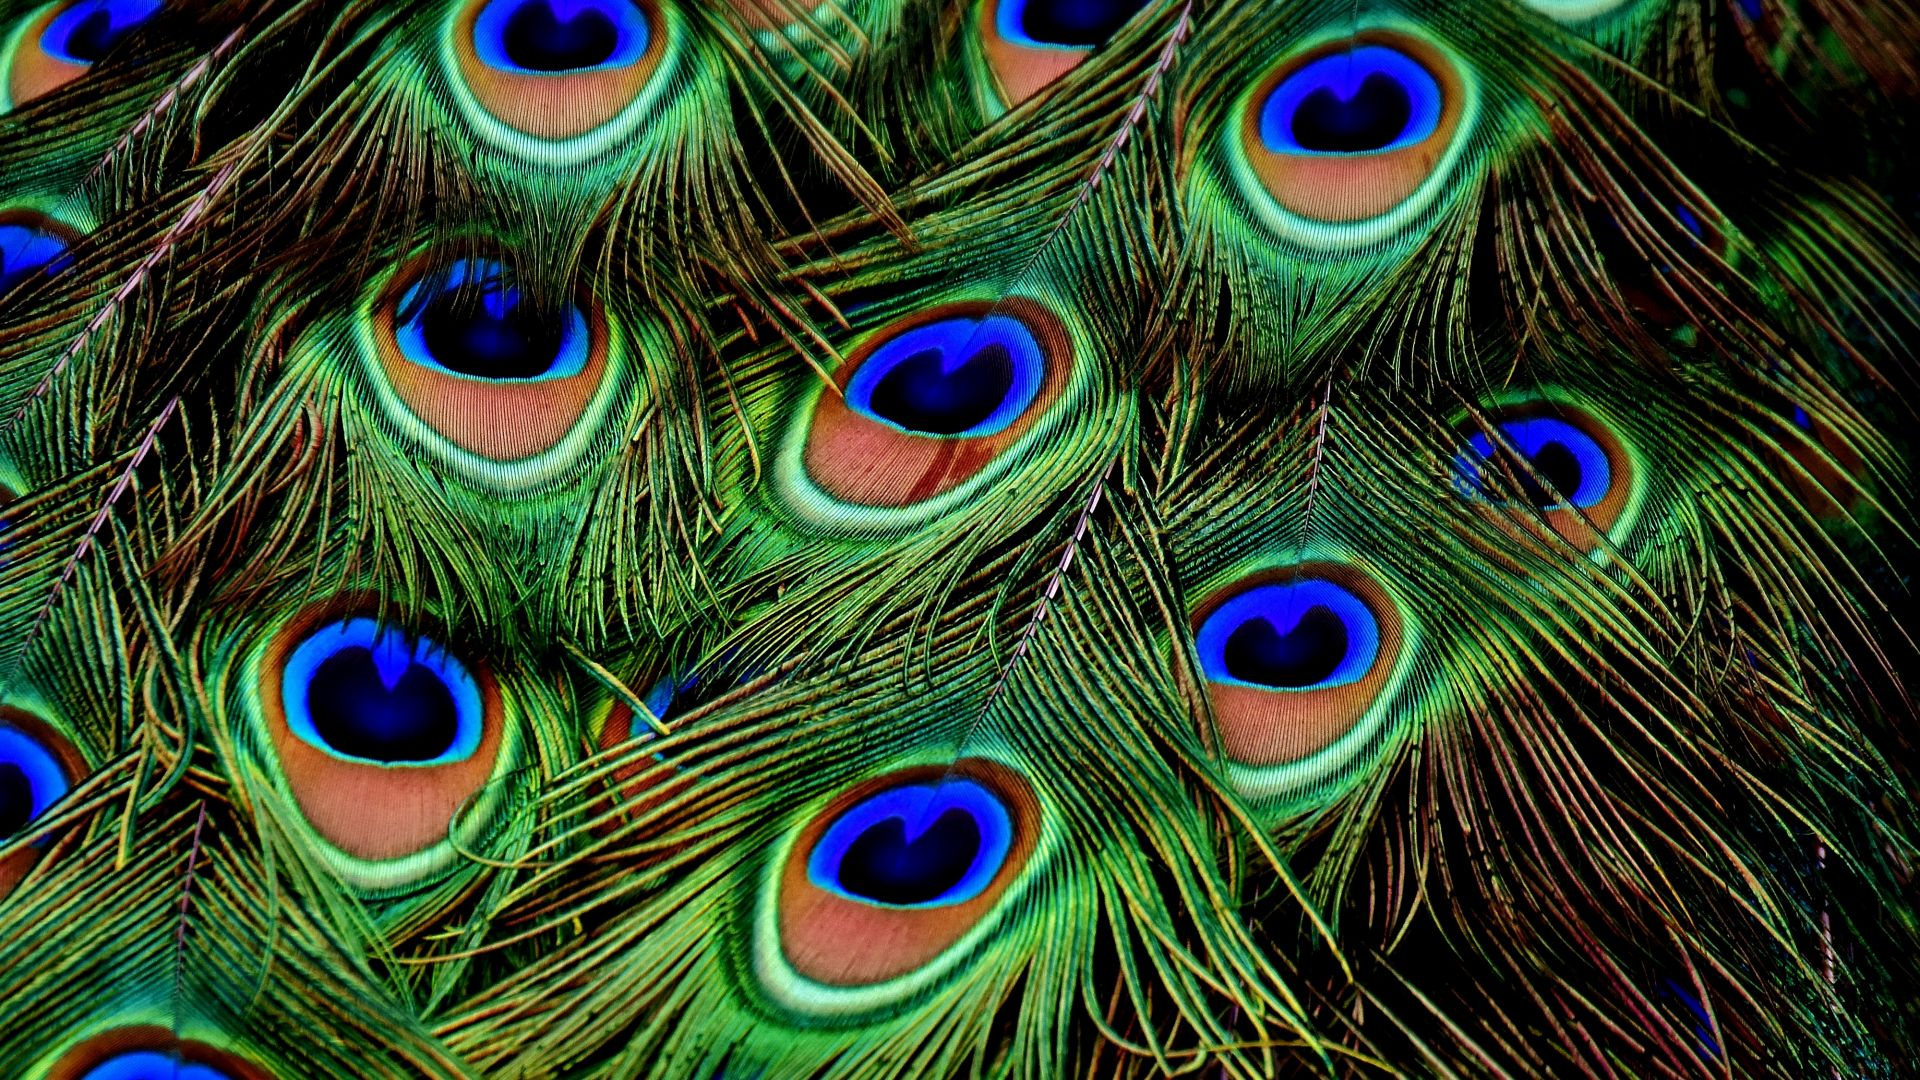 Wallpaper Peacock, Feather, 4k, Stock Images #17014